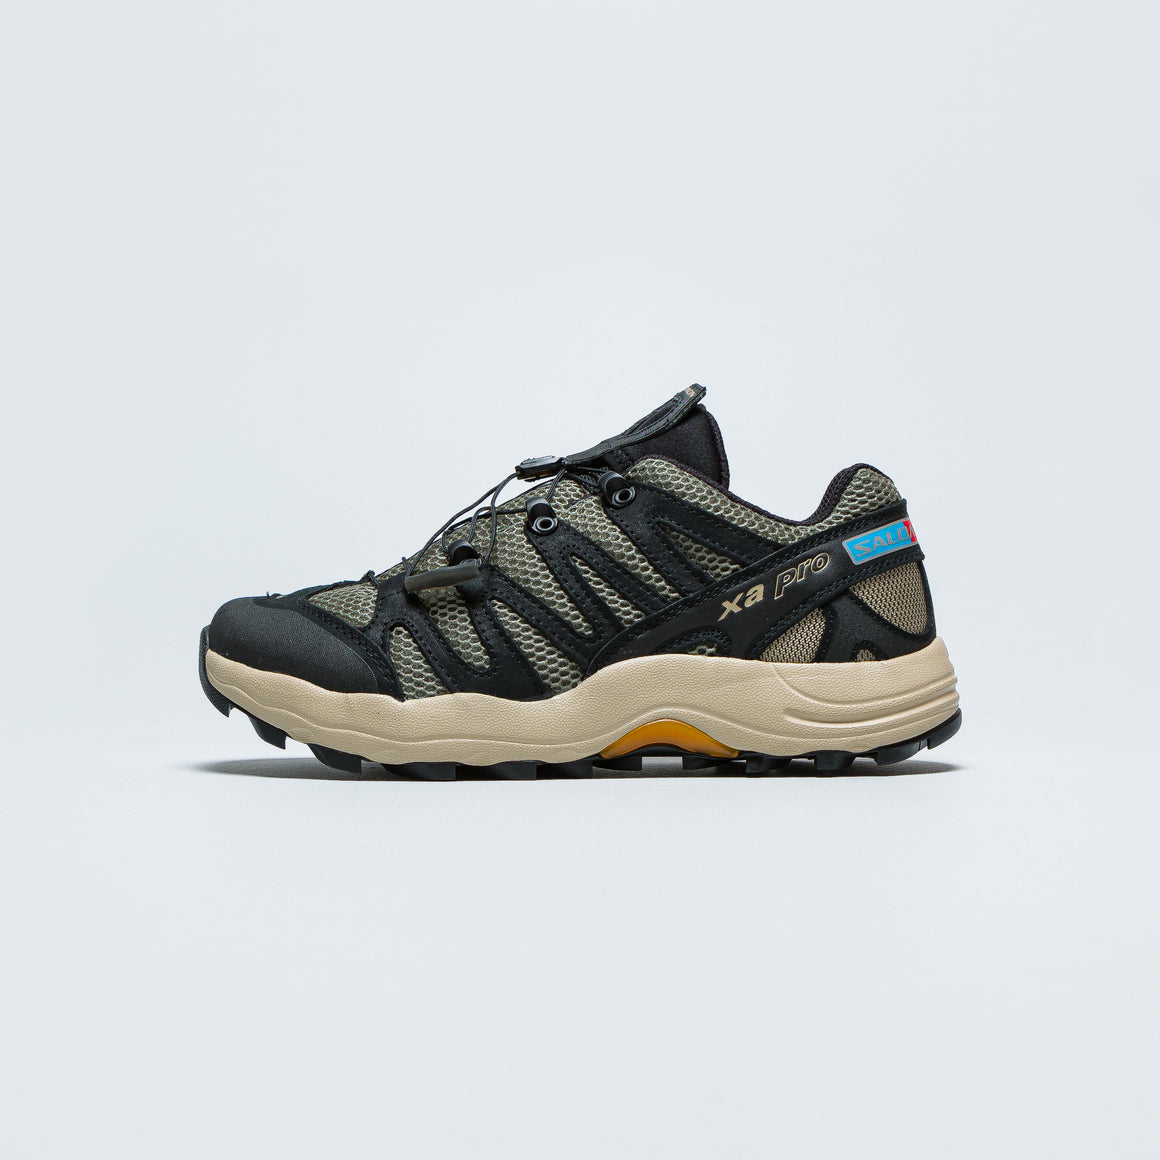 Salomon - XA Pro 1 Advanced - Vetiver/Black/Safari - Up There